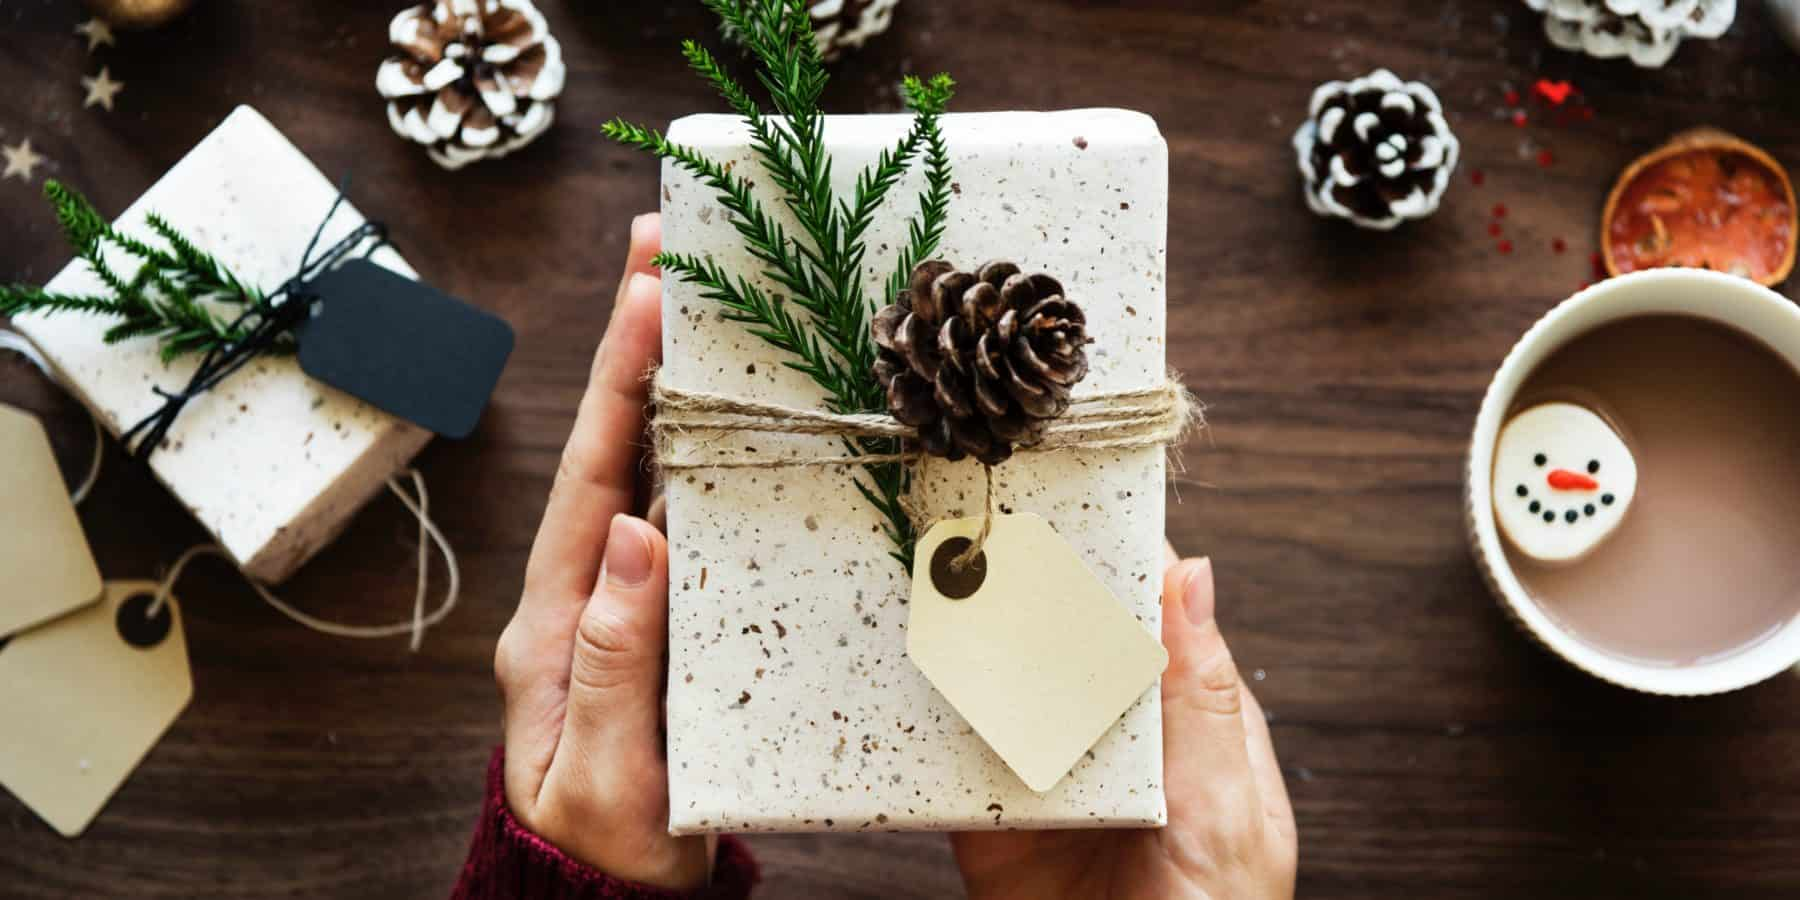 Gift List for every budget and person- Kids, Teens, Parents, Grandparents, Teachers, Boyfriend, Men,, Pets, Health Conscious, Couples, Anniversary, Birthday, Christmas, Wine Loves, DIY,